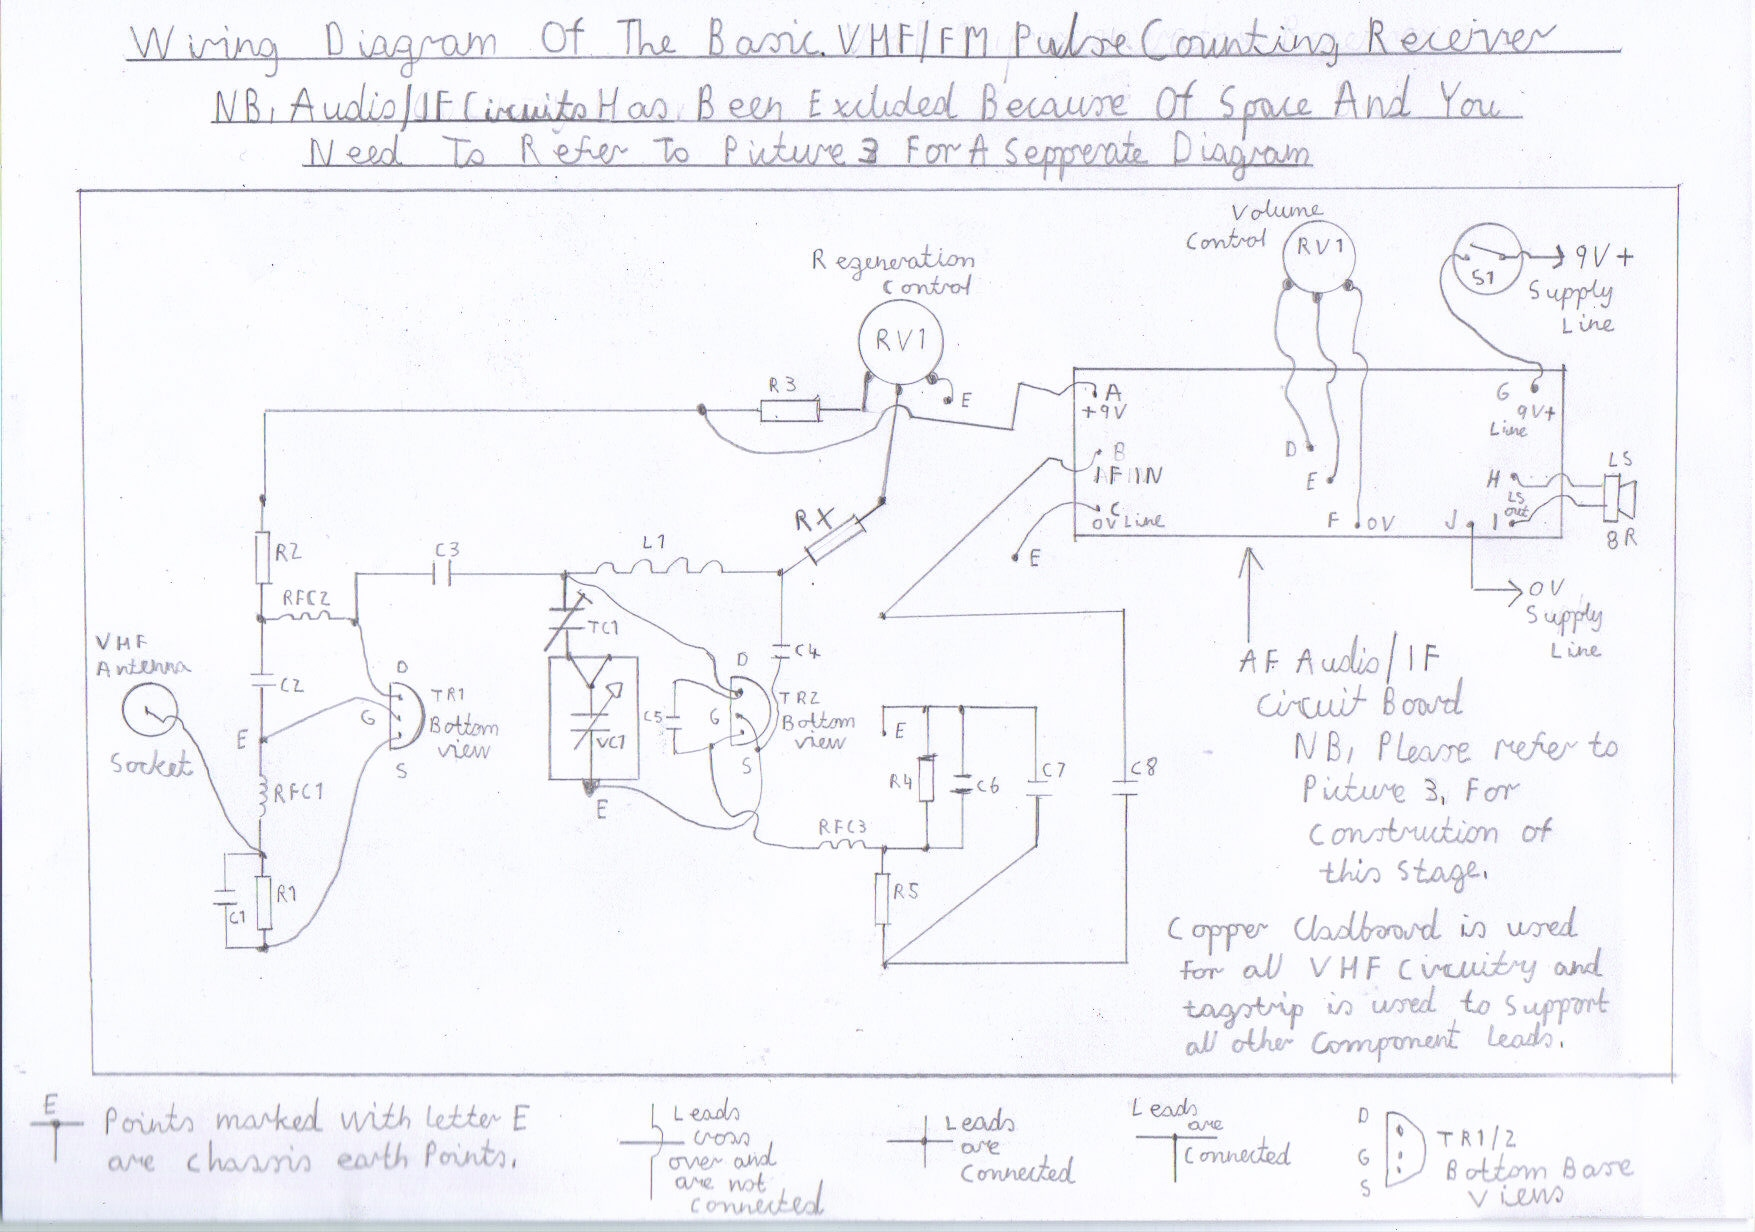 Progressive Crystal Set To Regenerative Receiver Using Safe 12v Ht Line Onetube Transmitter Schematic Diagrams And Circuit Descriptions Wiring Diagram Of The Simple Pulse Counting Fm Note That This Is Rf Circuits You Need Refer Picture 9 For If Af Amp Circuitry